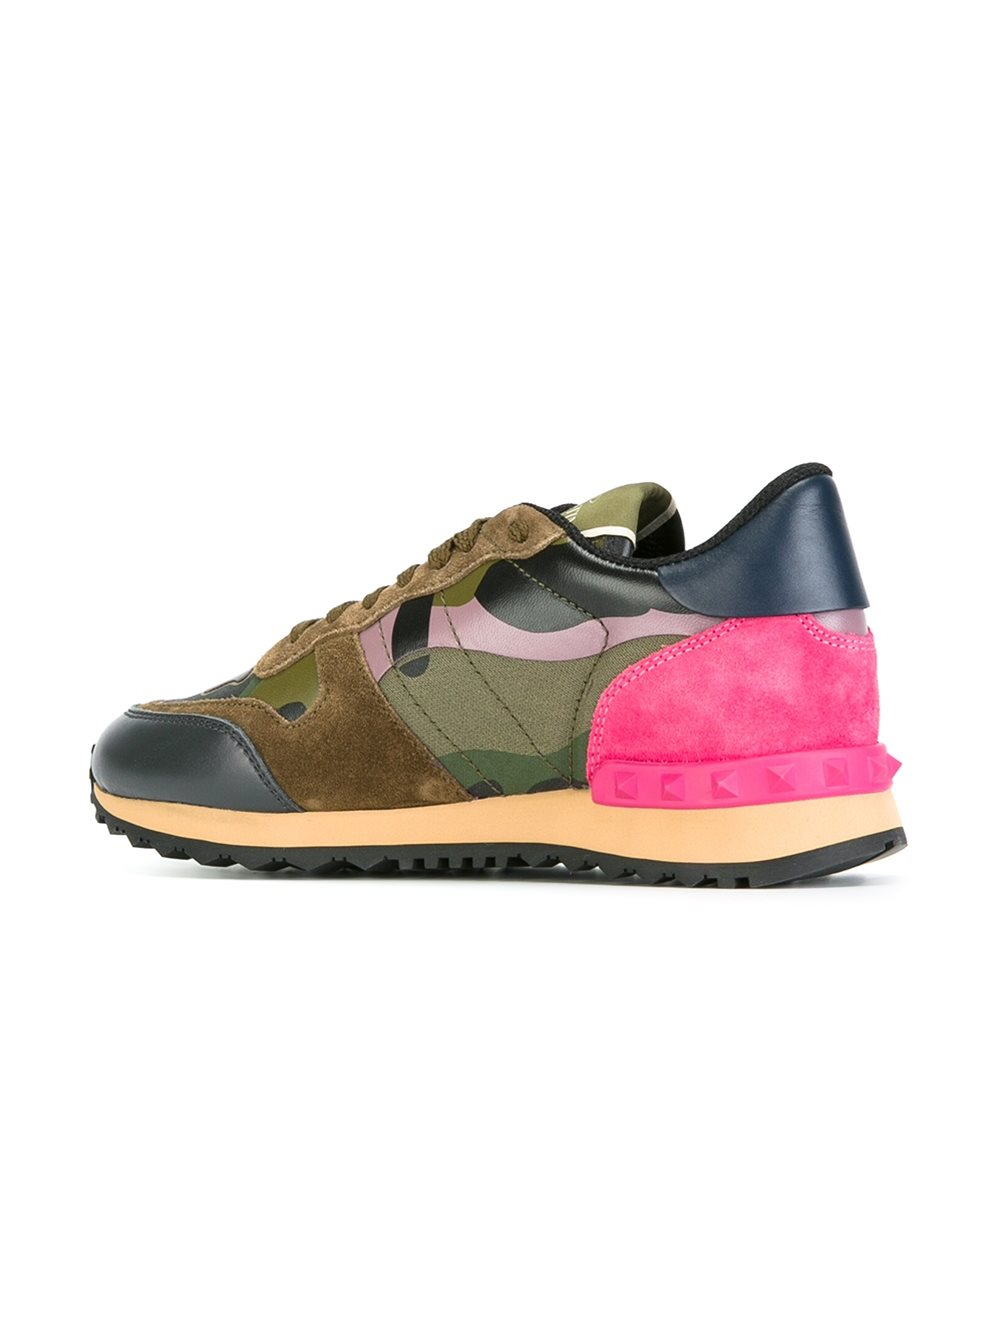 Sneakers valentino femme pas cher